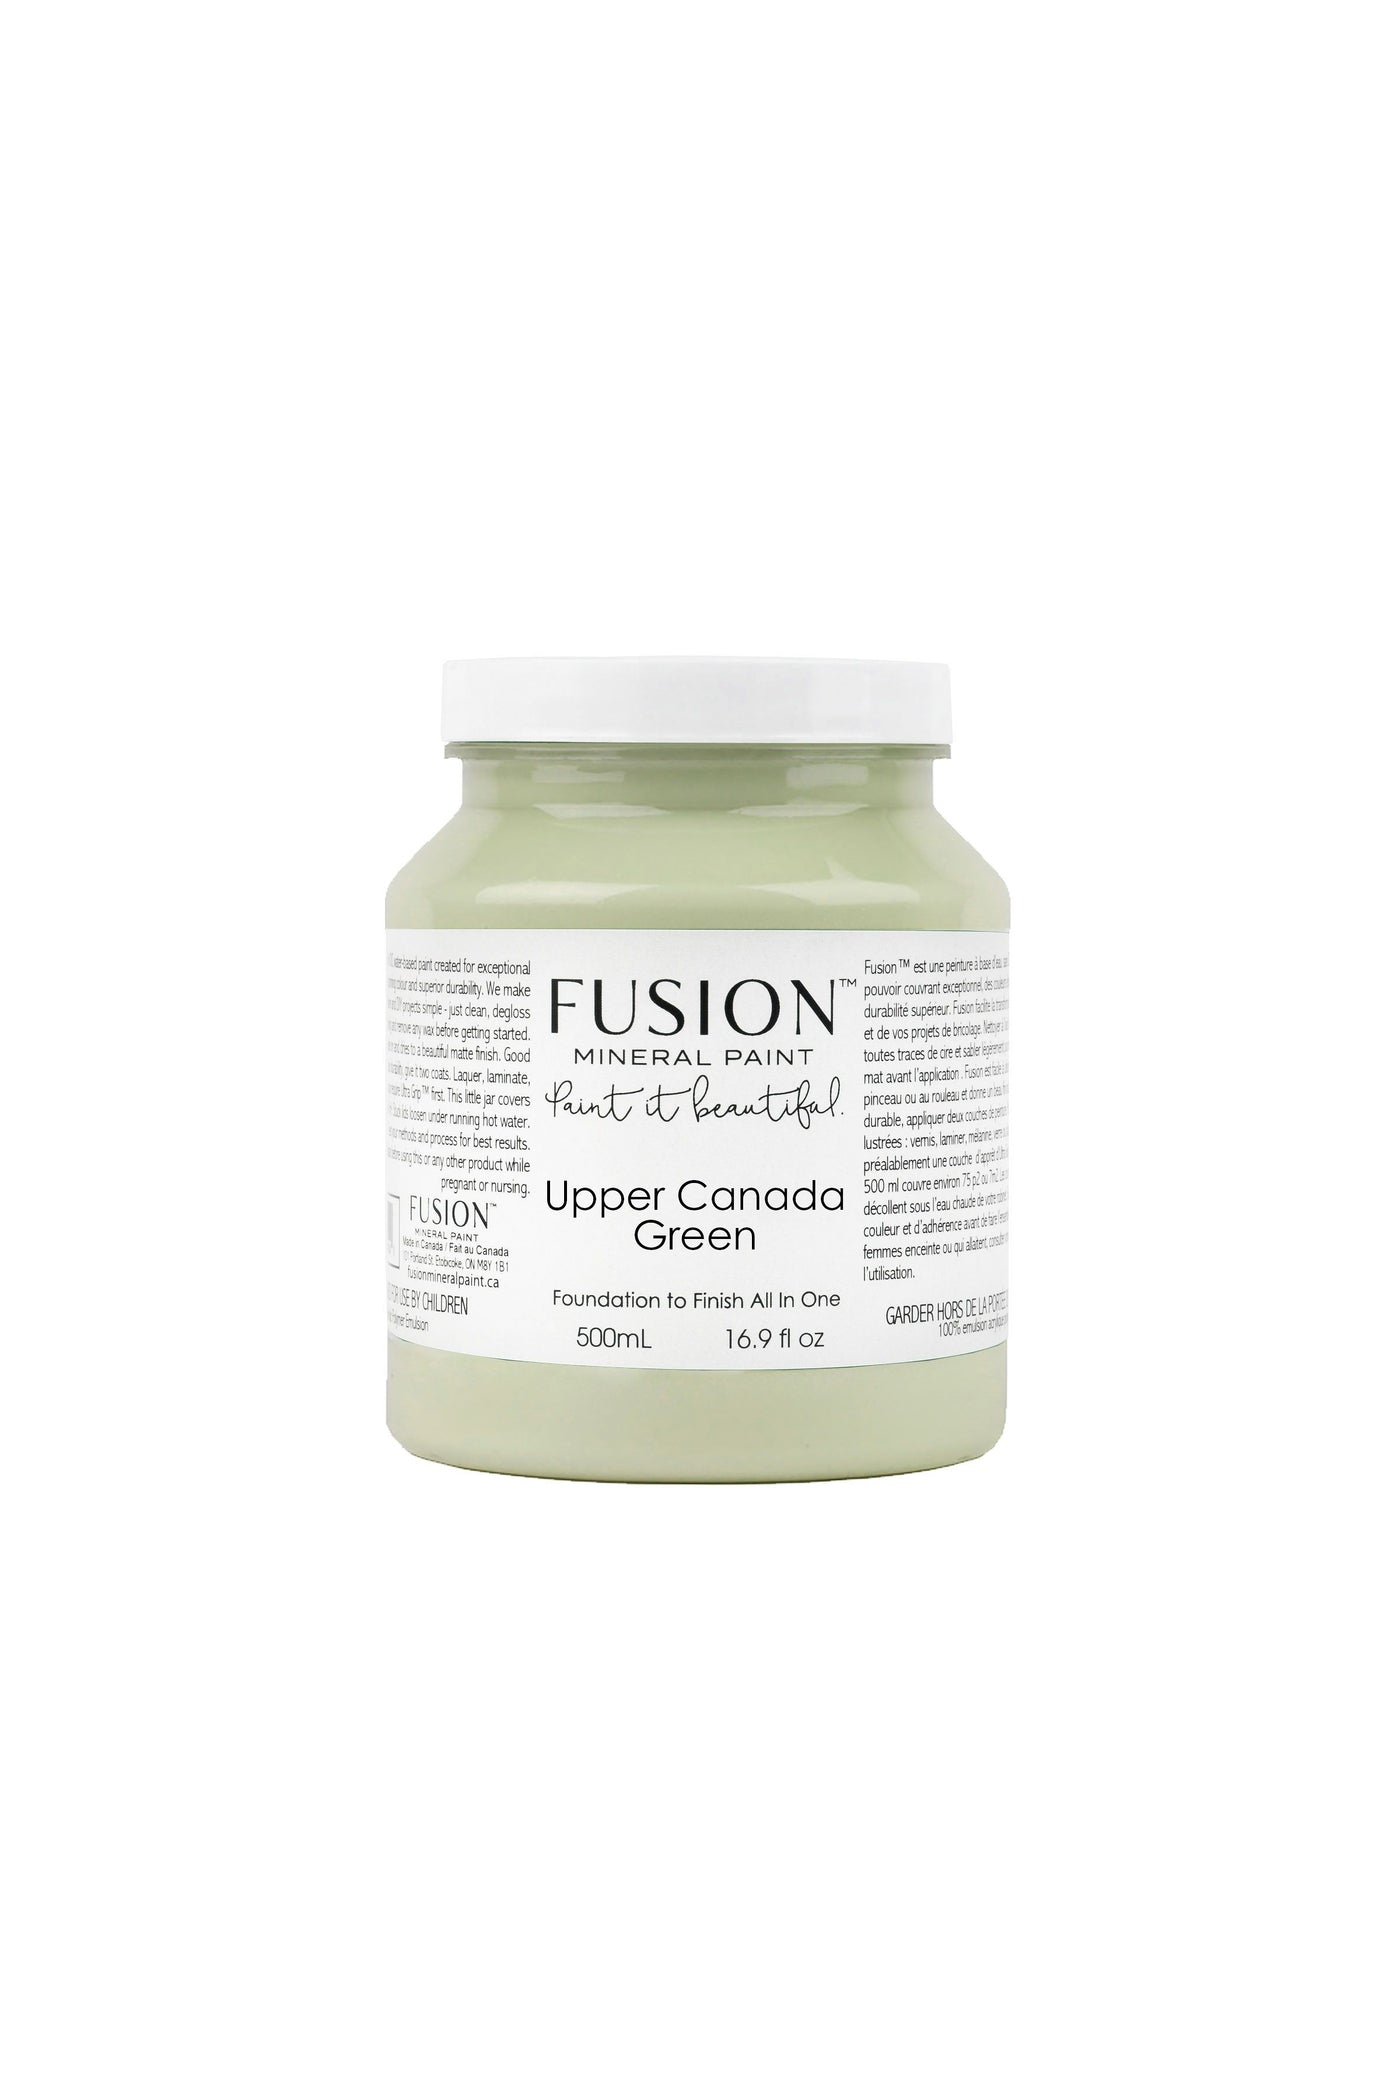 Fusion Mineral Paint - UPPER CANADA GREEN - LIMITED EDITION Tester